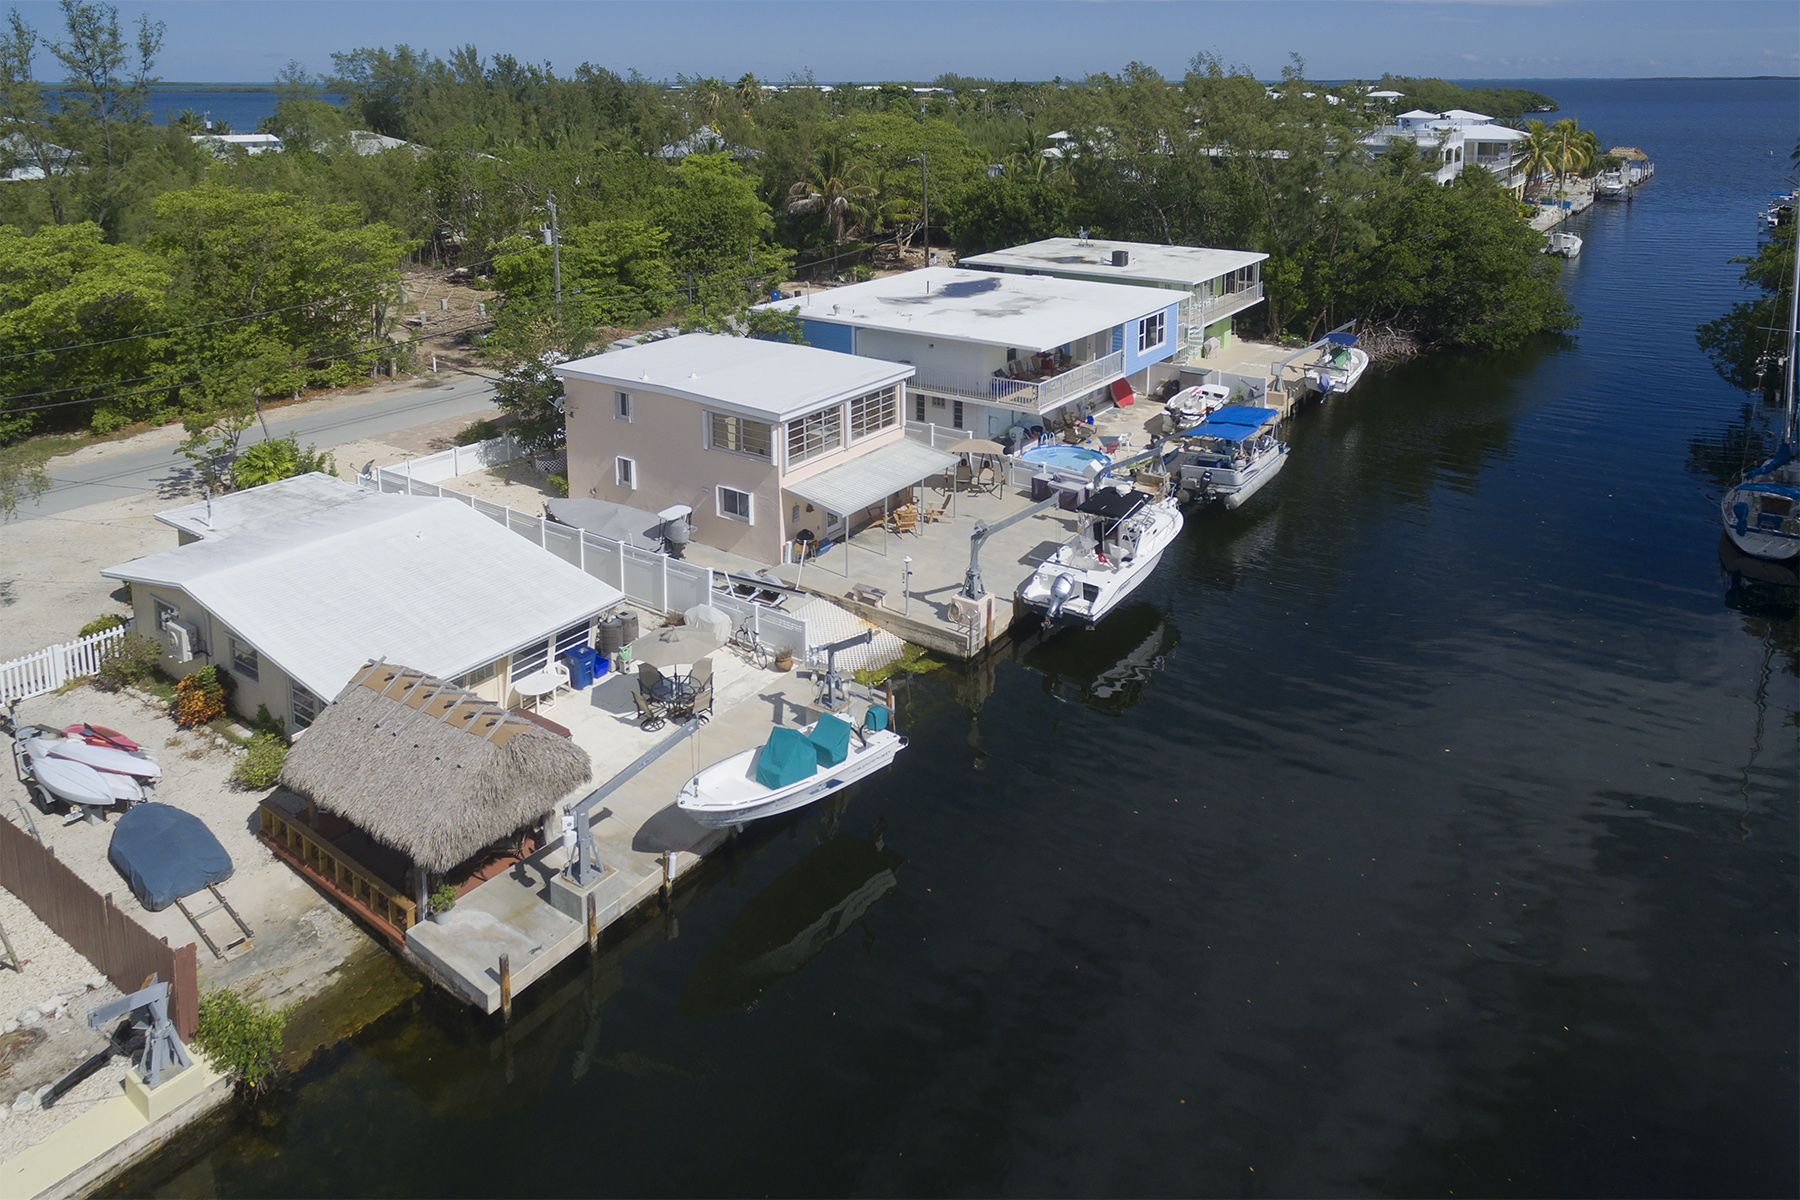 Maison unifamiliale pour l Vente à Ground Level Canalfront Home 28 Jean La Fitte Drive Key Largo, Florida, 33037 États-Unis